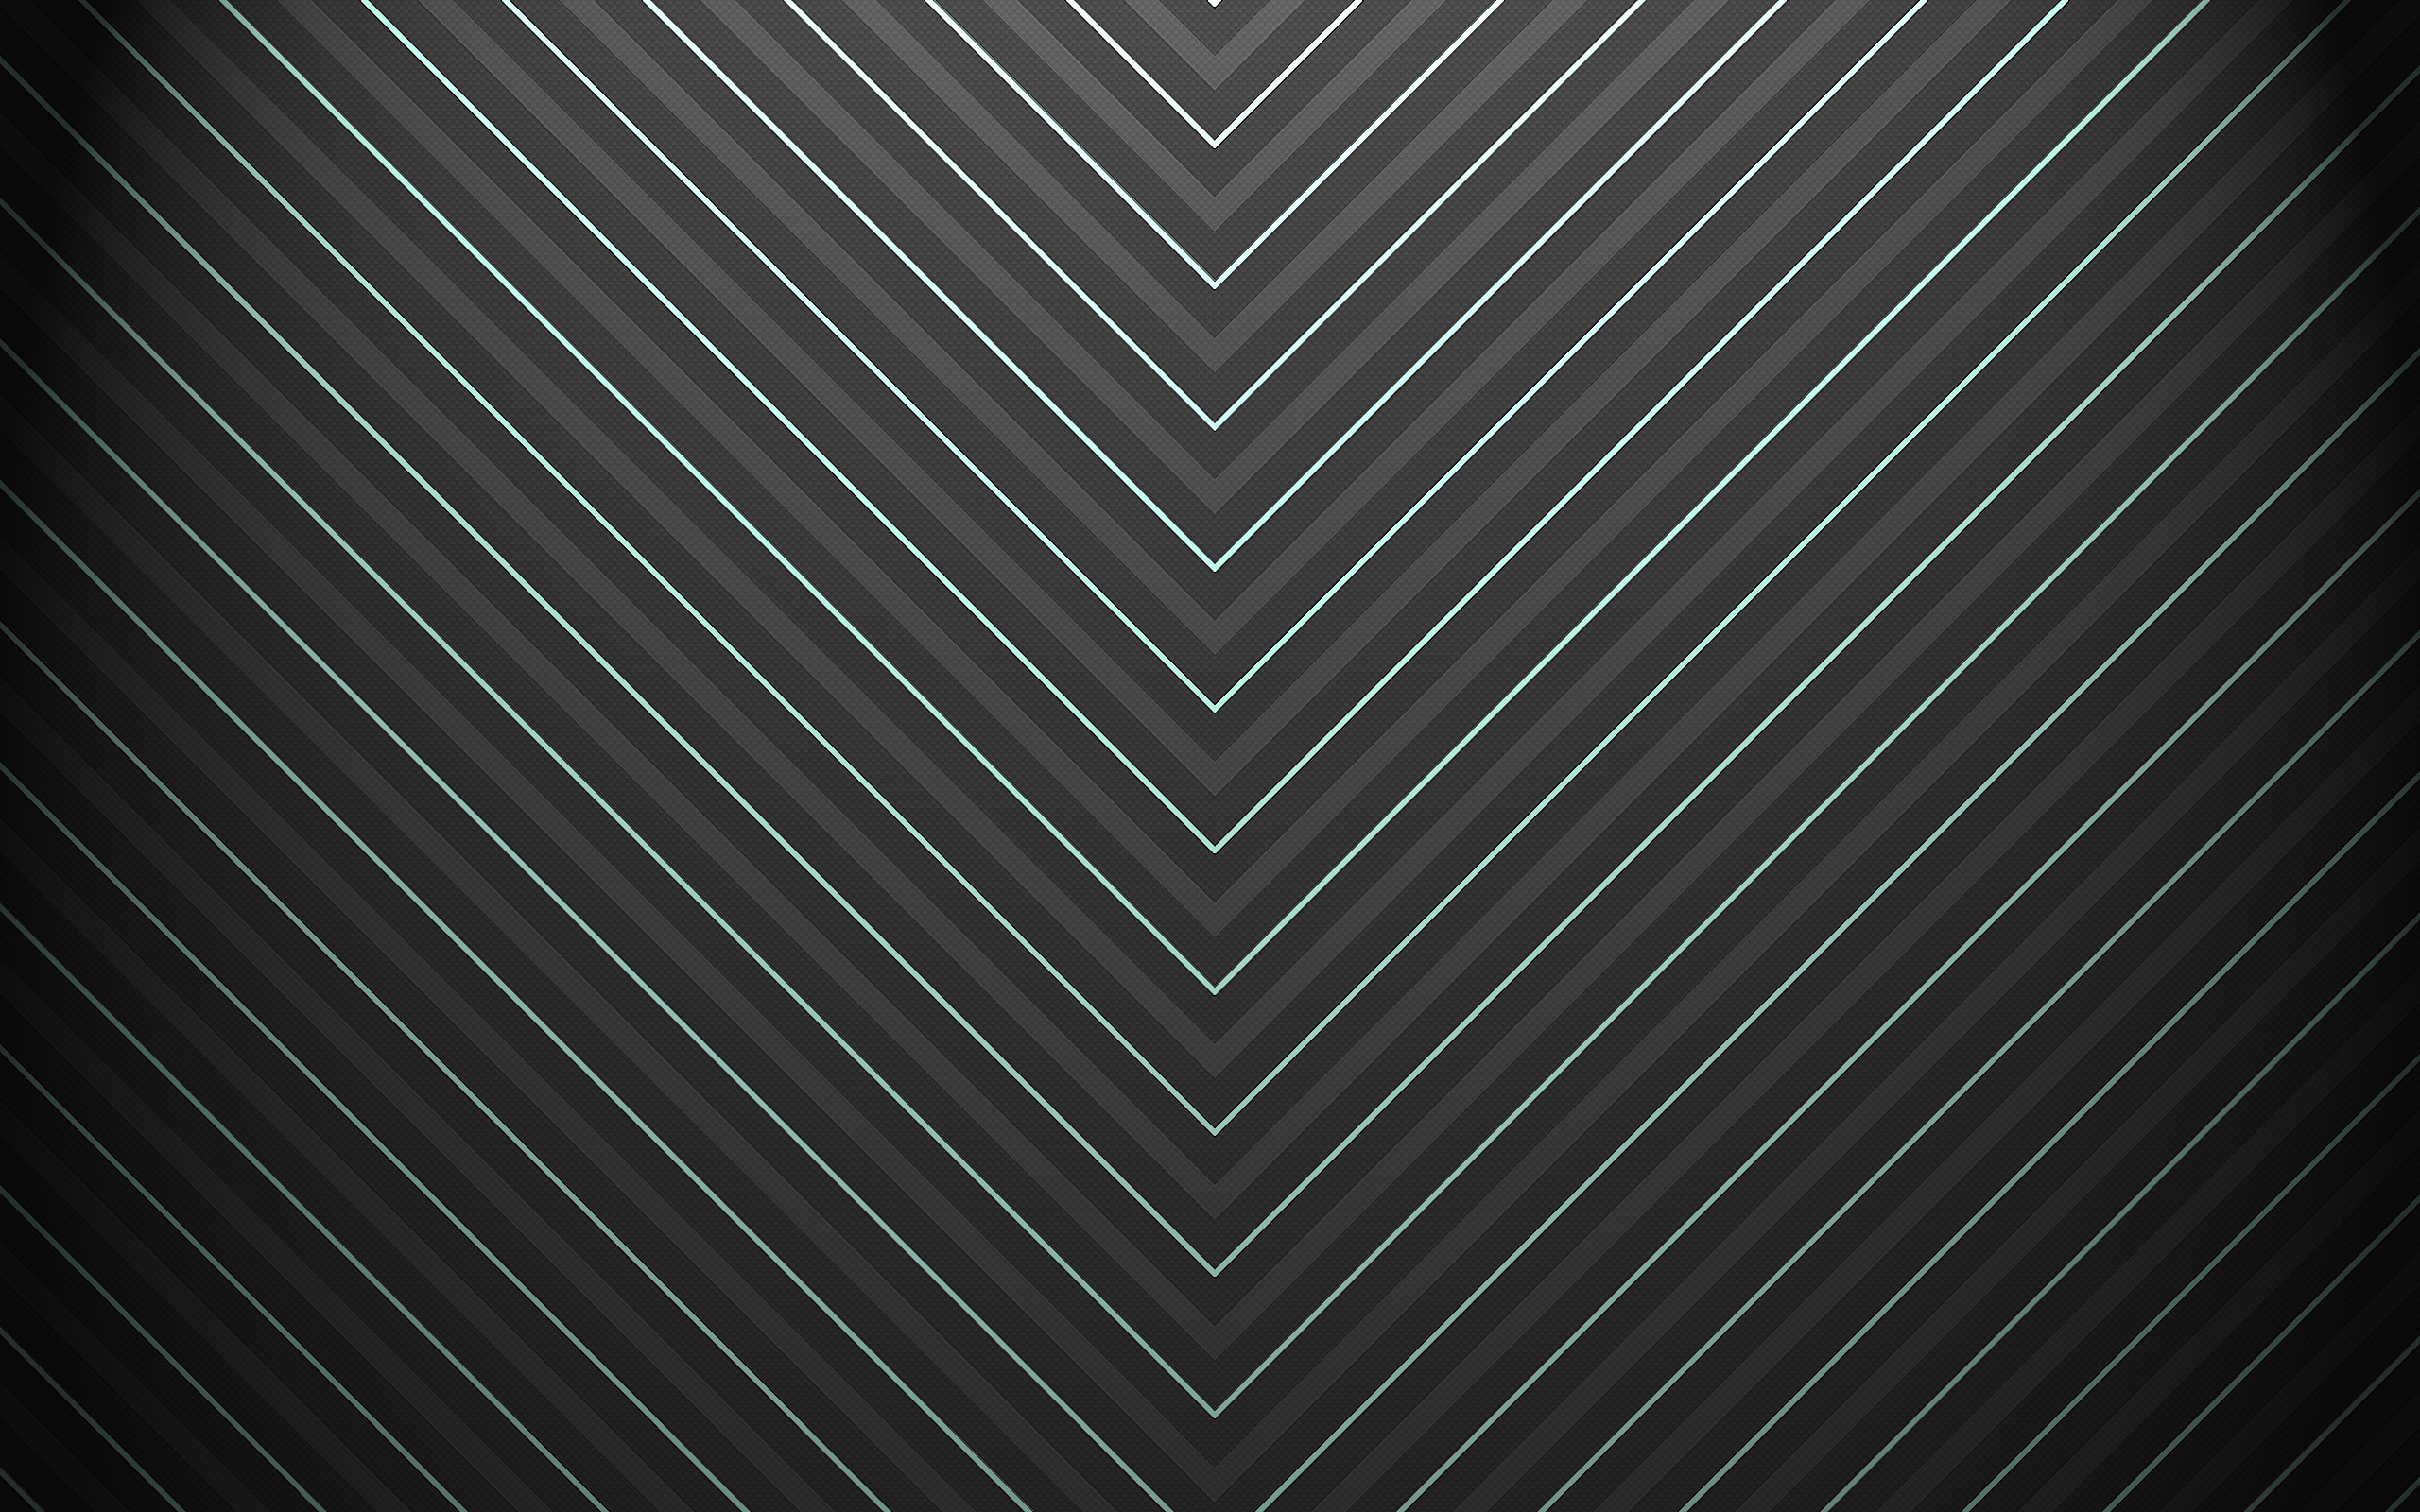 lines texture, lines texture, backgrounds, background for website